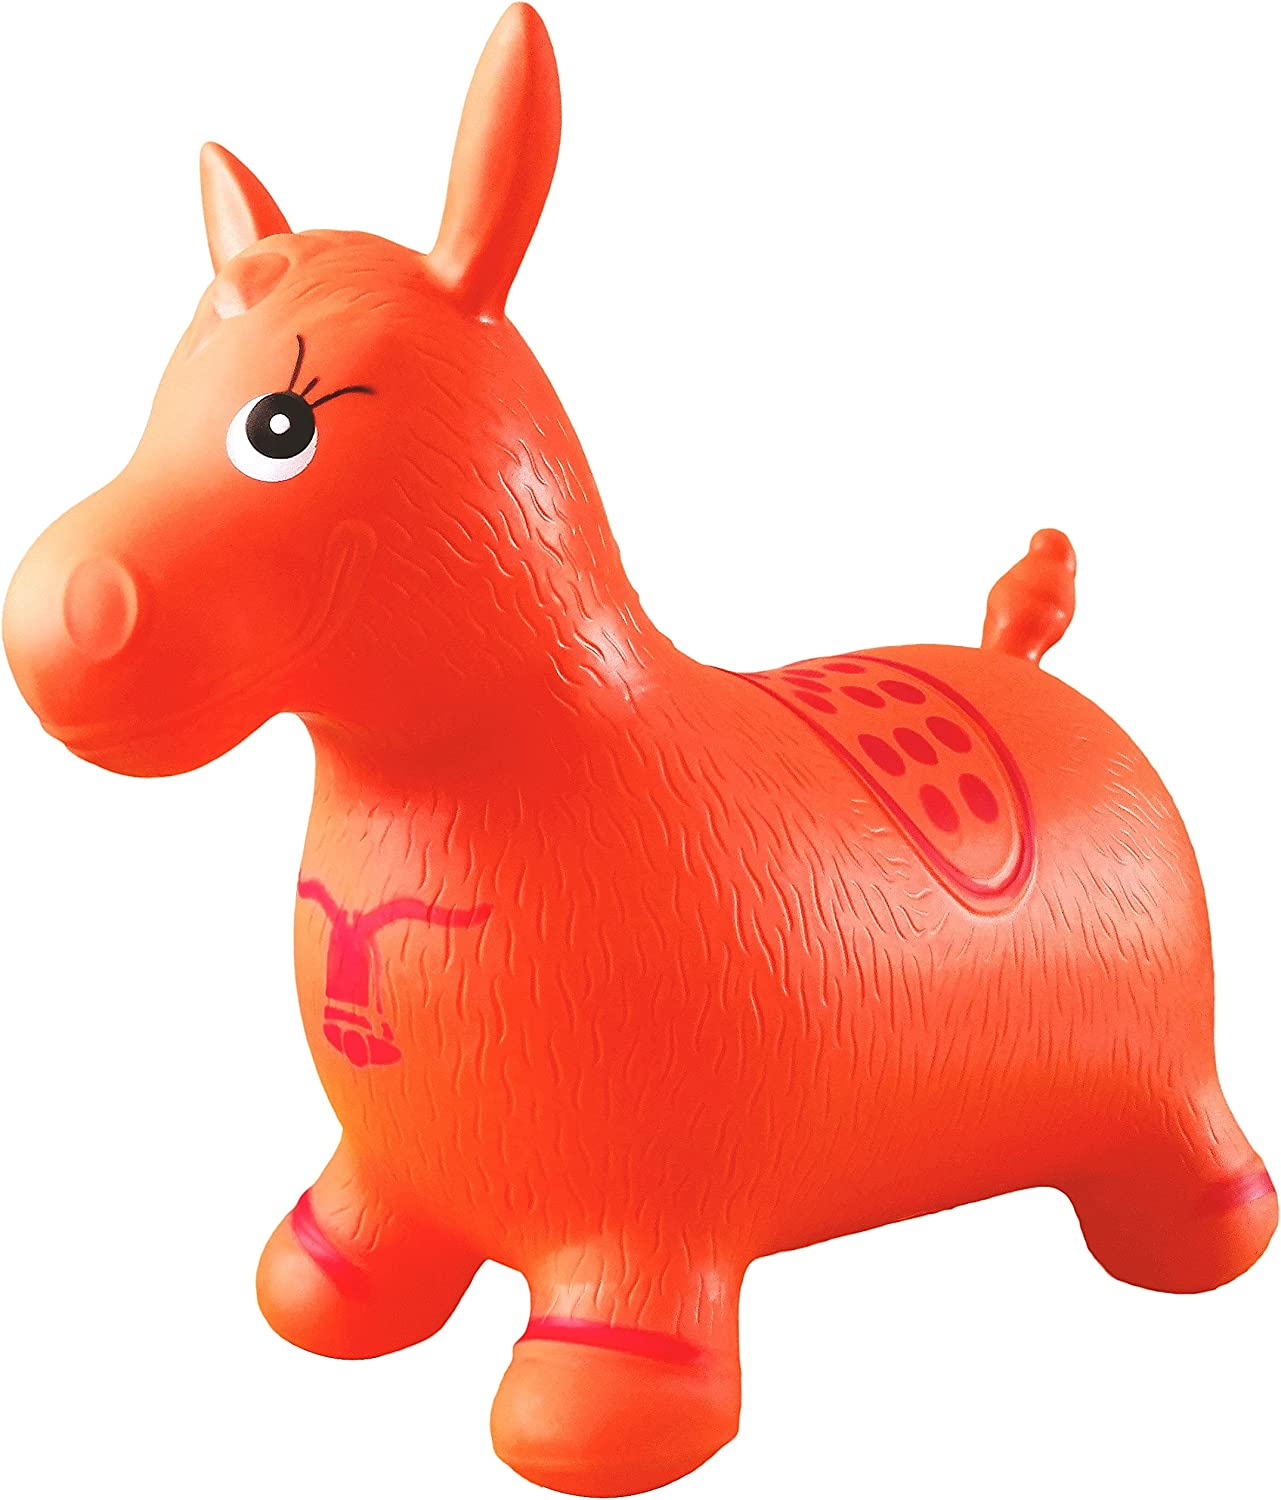 Orange Horse Hopper, Pump Included (Inflatable Space Hopper, Jumping Horse, Ride-on Bouncy Animal)